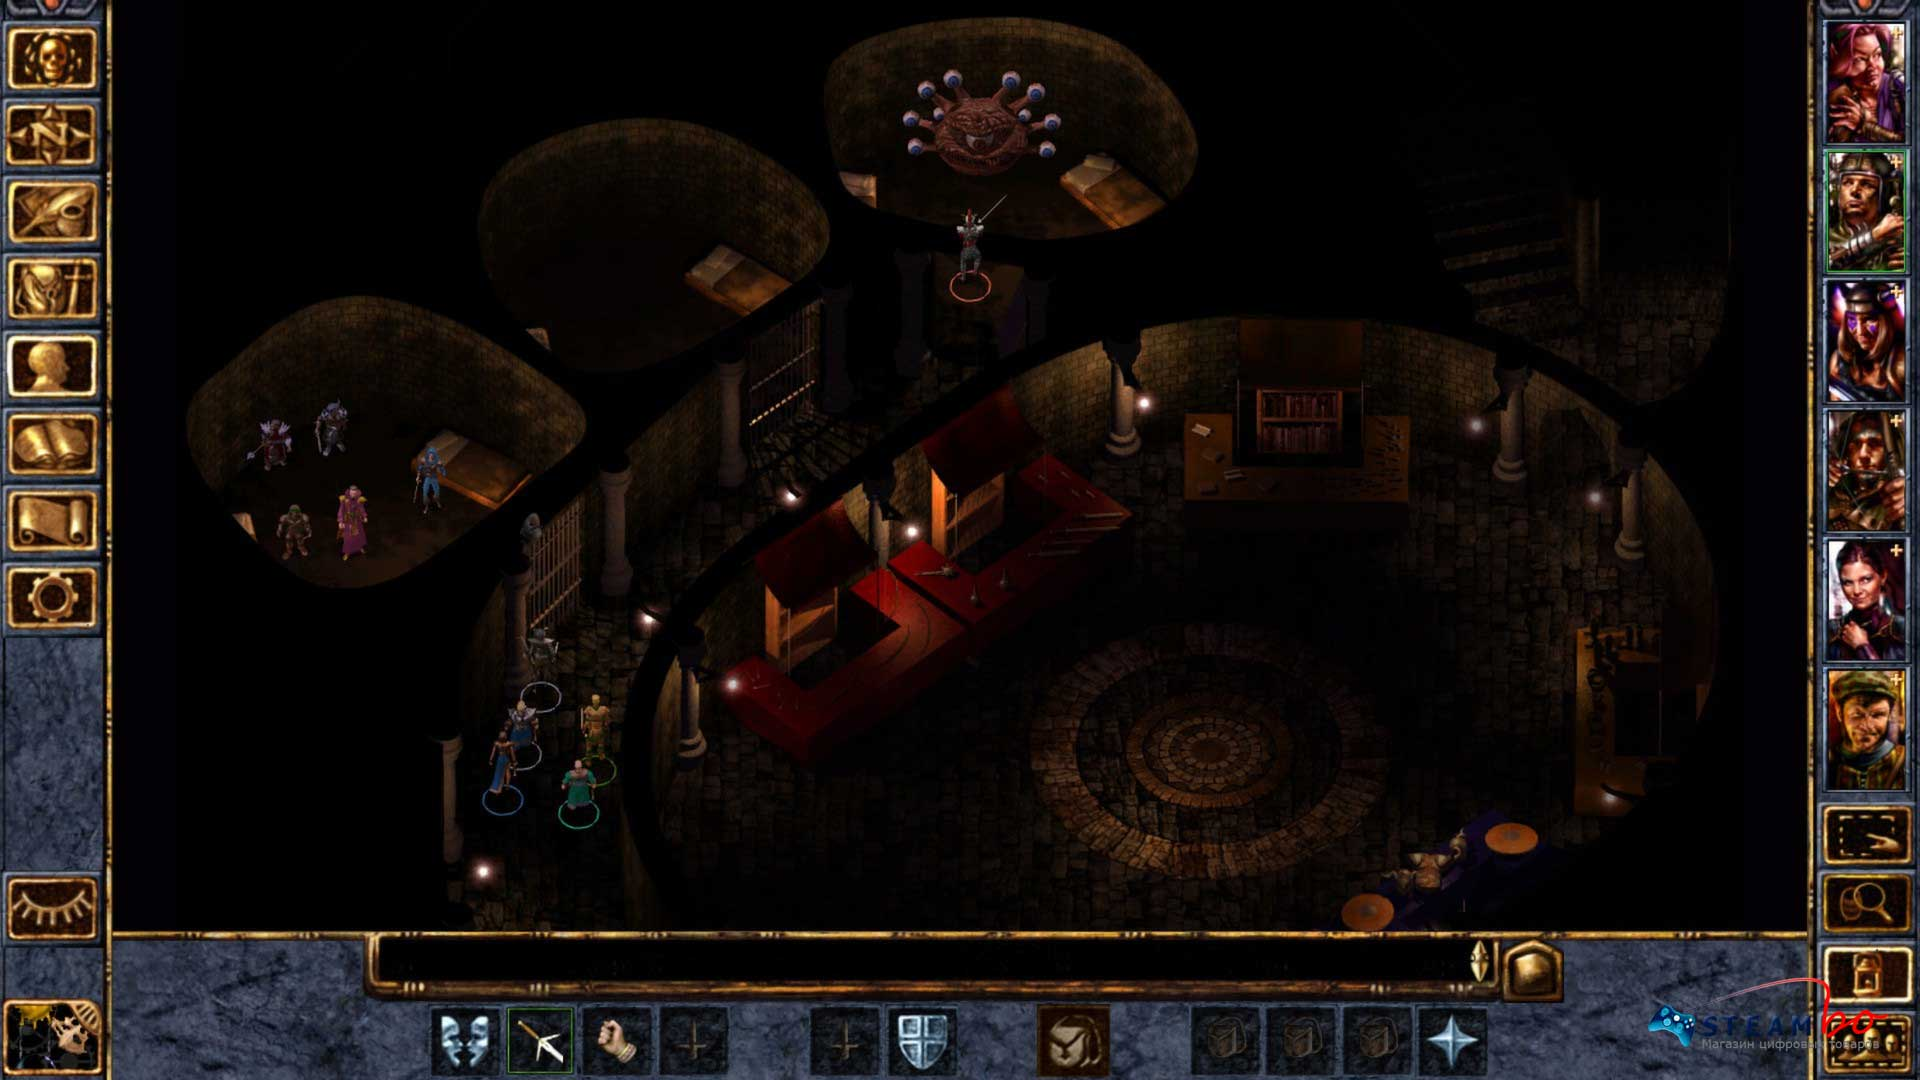 Baldurs Gate: Enhanced Edition ROW (Steam Gift / Key)